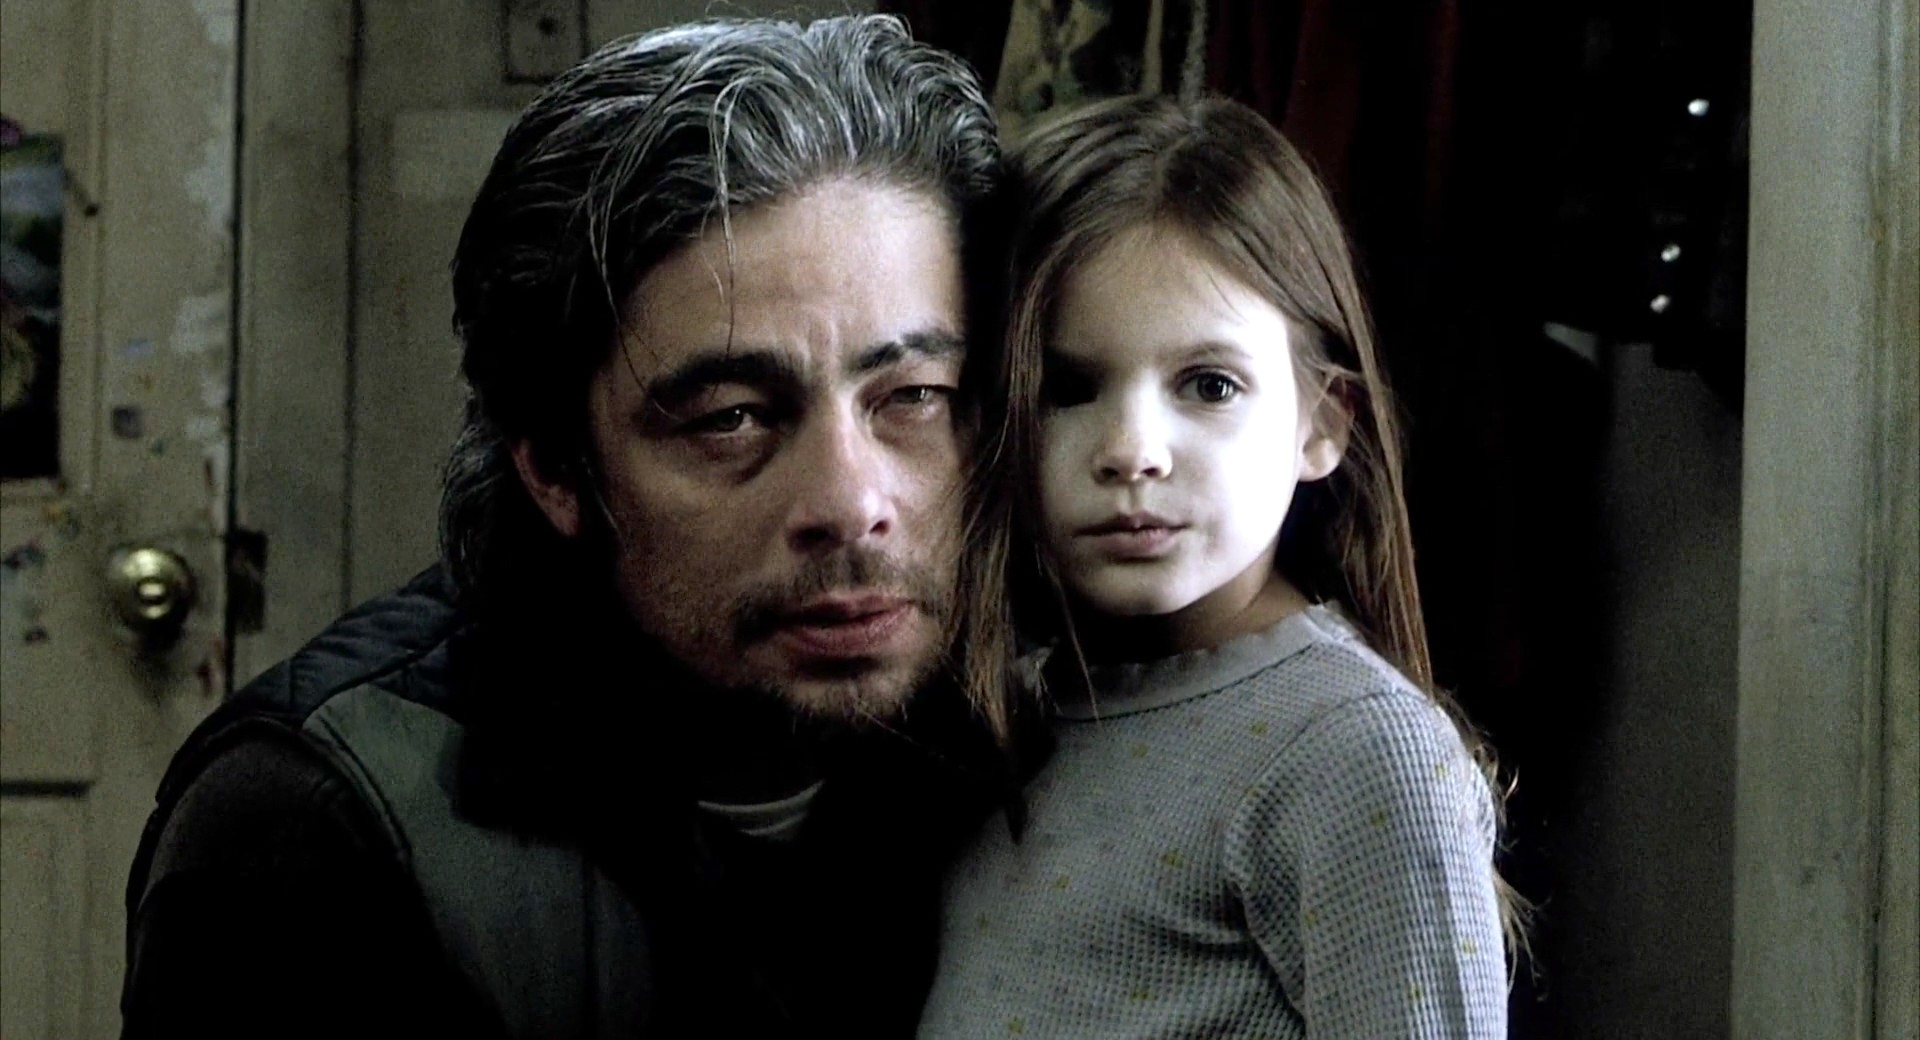 Images of 21 Grams | 1920x1040